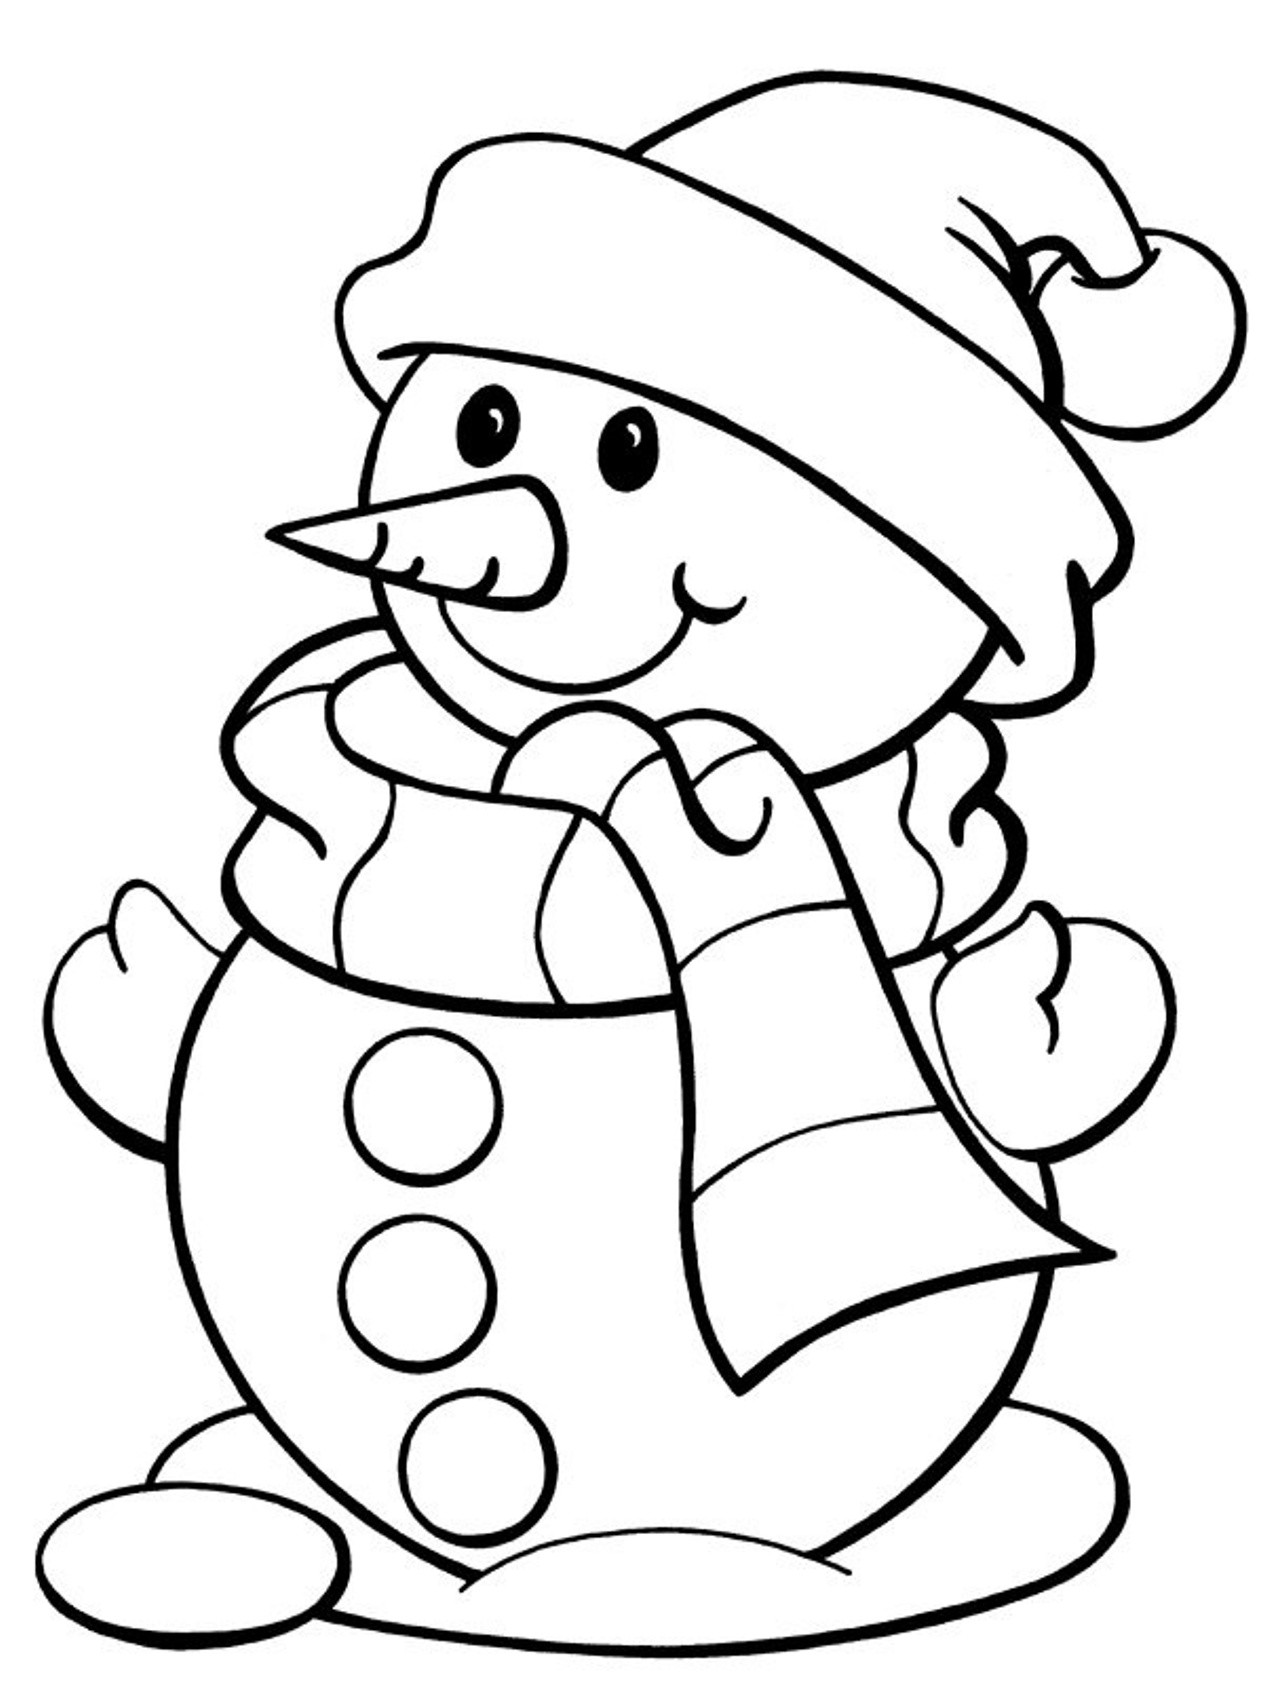 Best ideas about Free Coloring Sheets Winter . Save or Pin 23 Winter season coloring pages Print Color Craft Now.